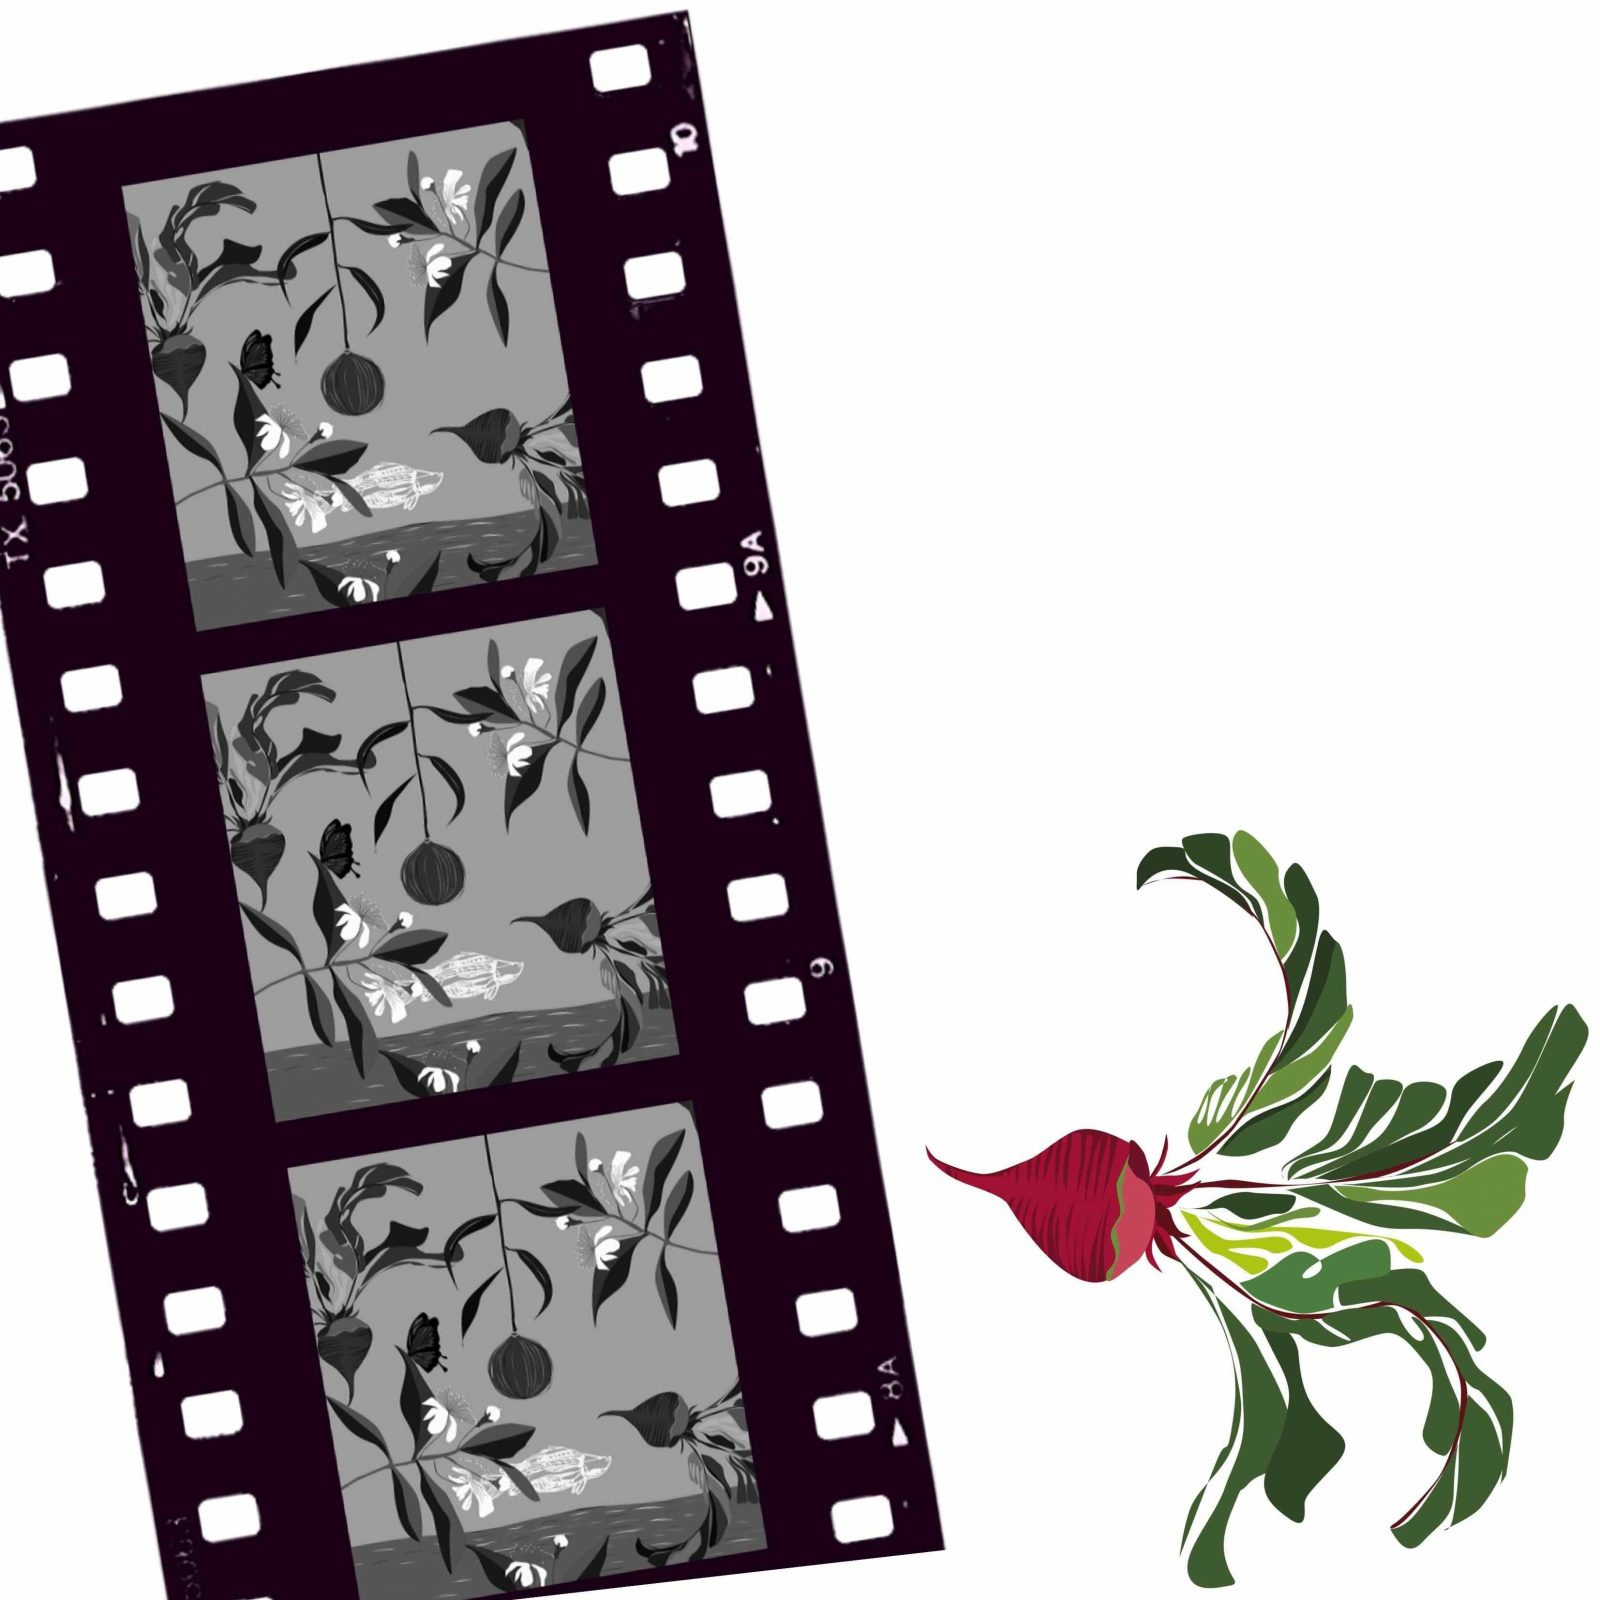 Old movie roll with greens , beet root outside